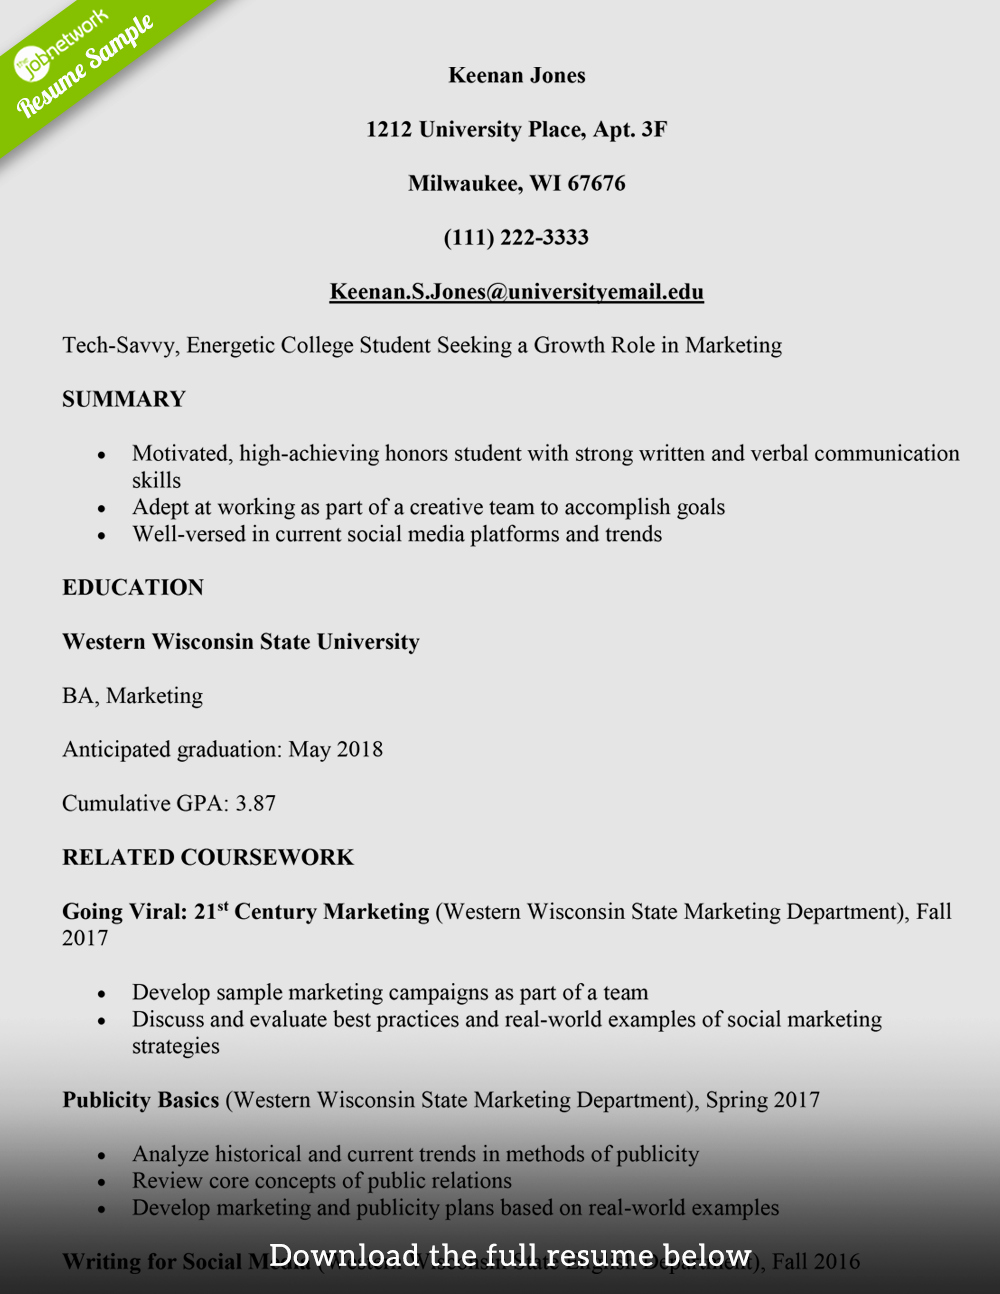 College Freshman Resume Template Beautiful How to Write A College Student Resume with Examples